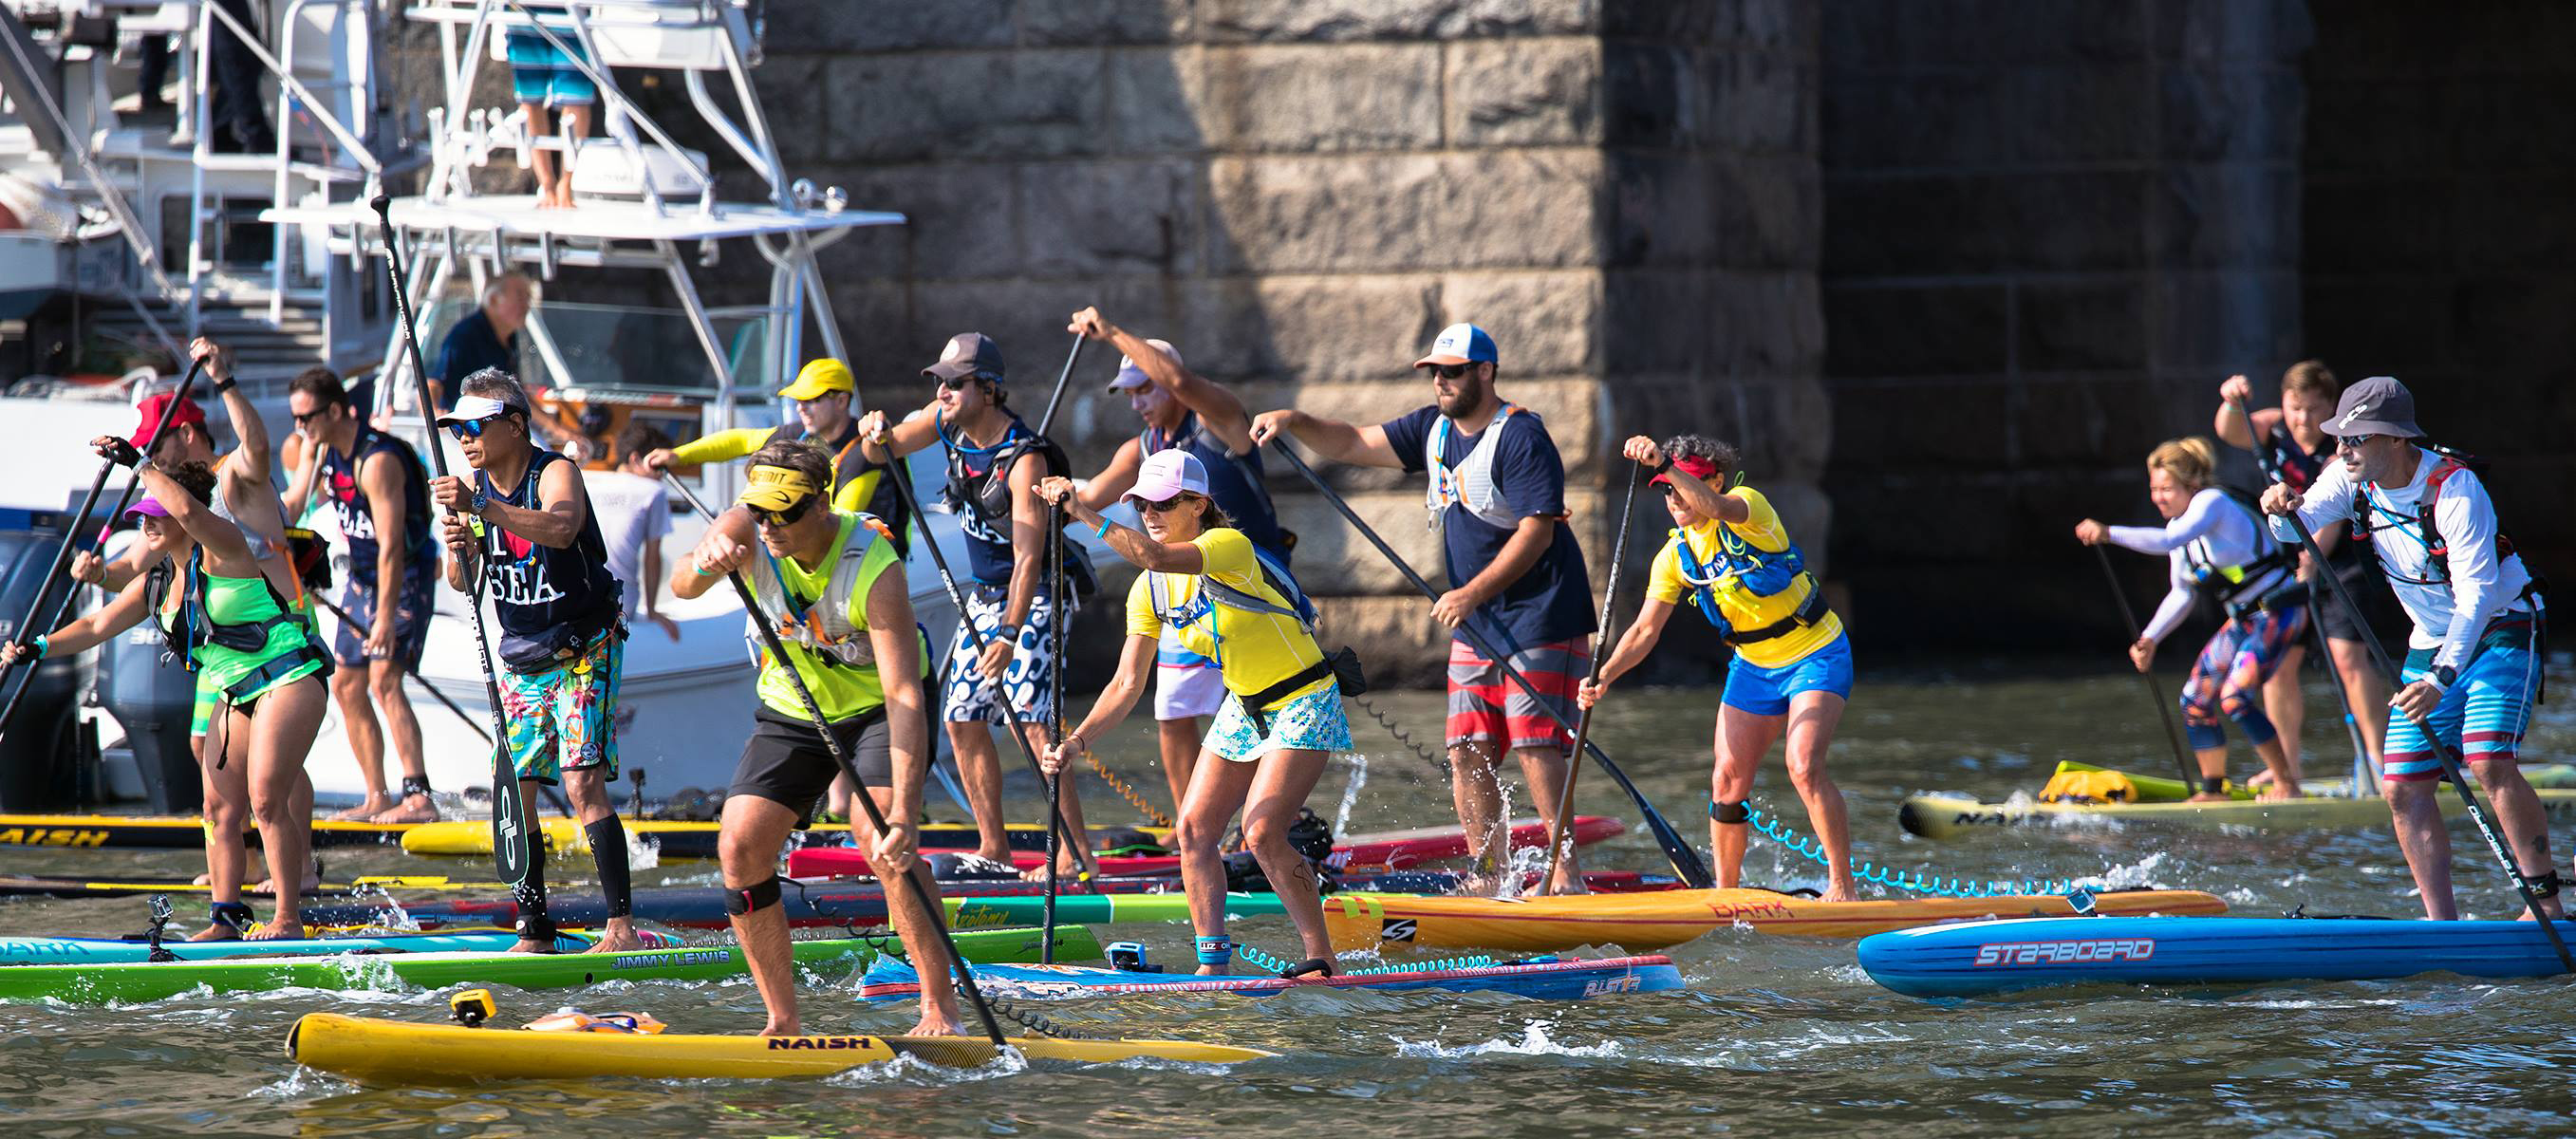 SUP Racer - The Pulse Of Stand Up Paddle Racing